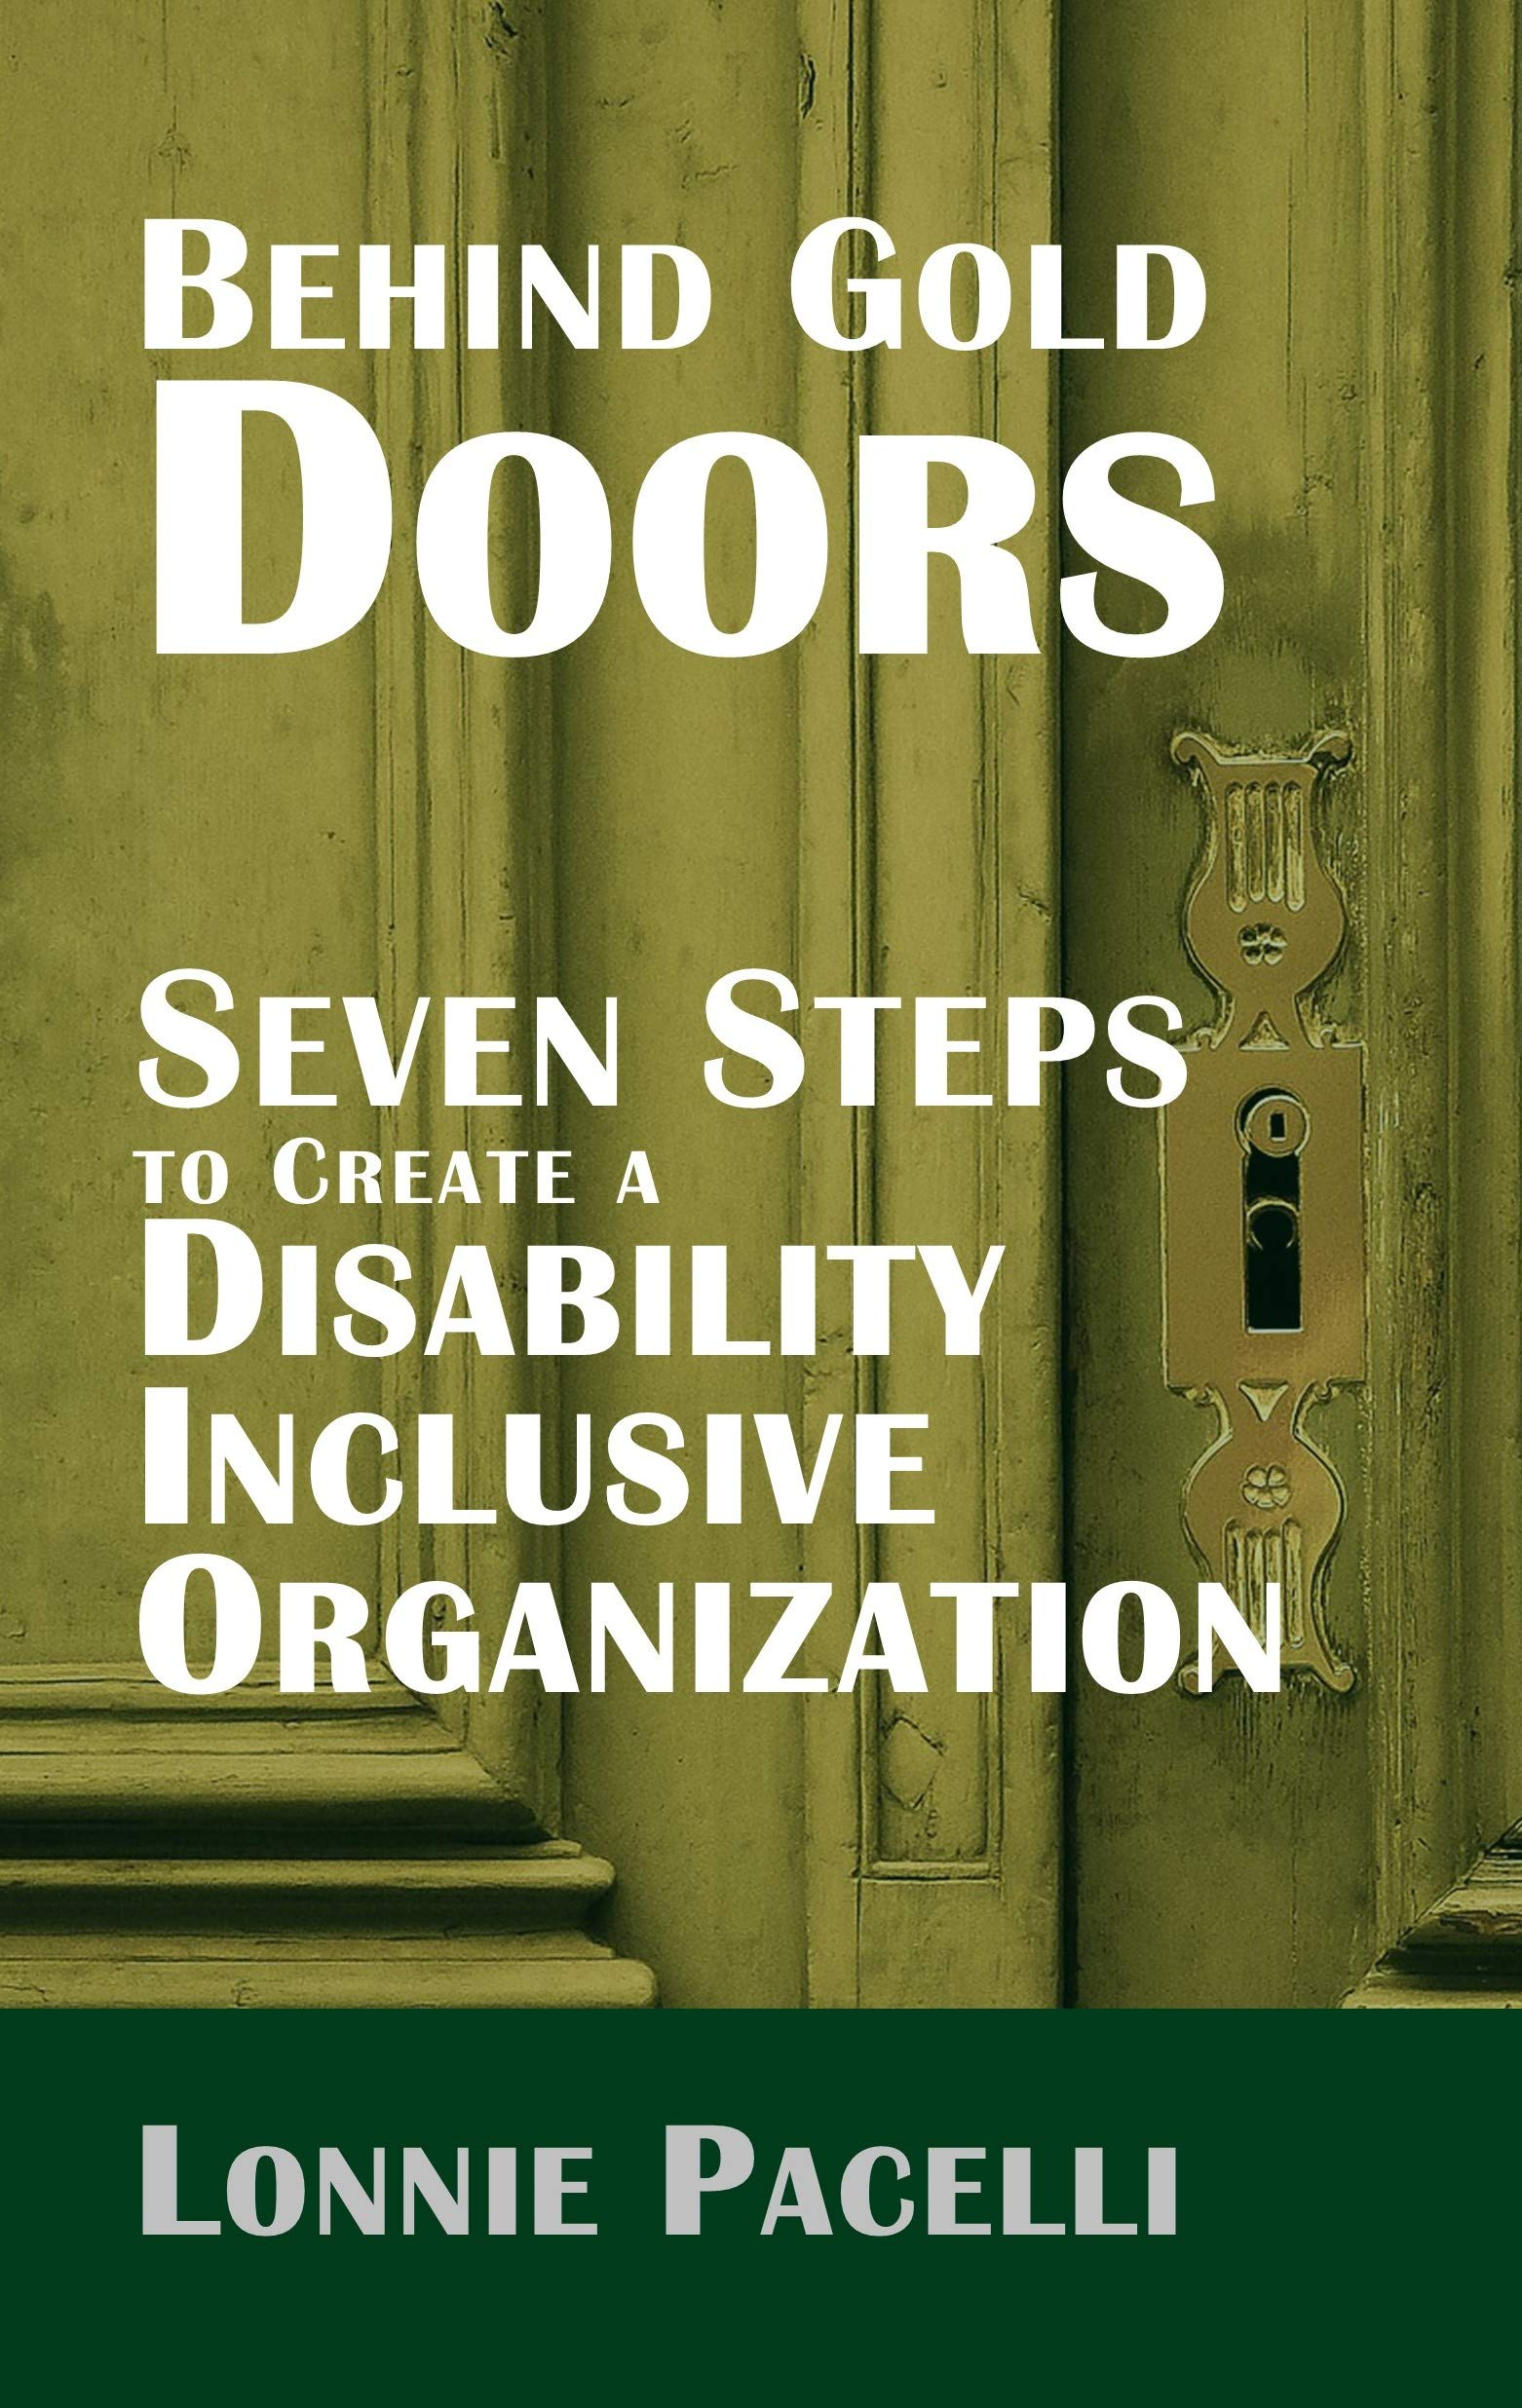 Behind Gold Doors-Seven Steps to Create a Disability Inclusive Organization: An Allegory about Disability Inclusion (The Behind Gold Doors Series)